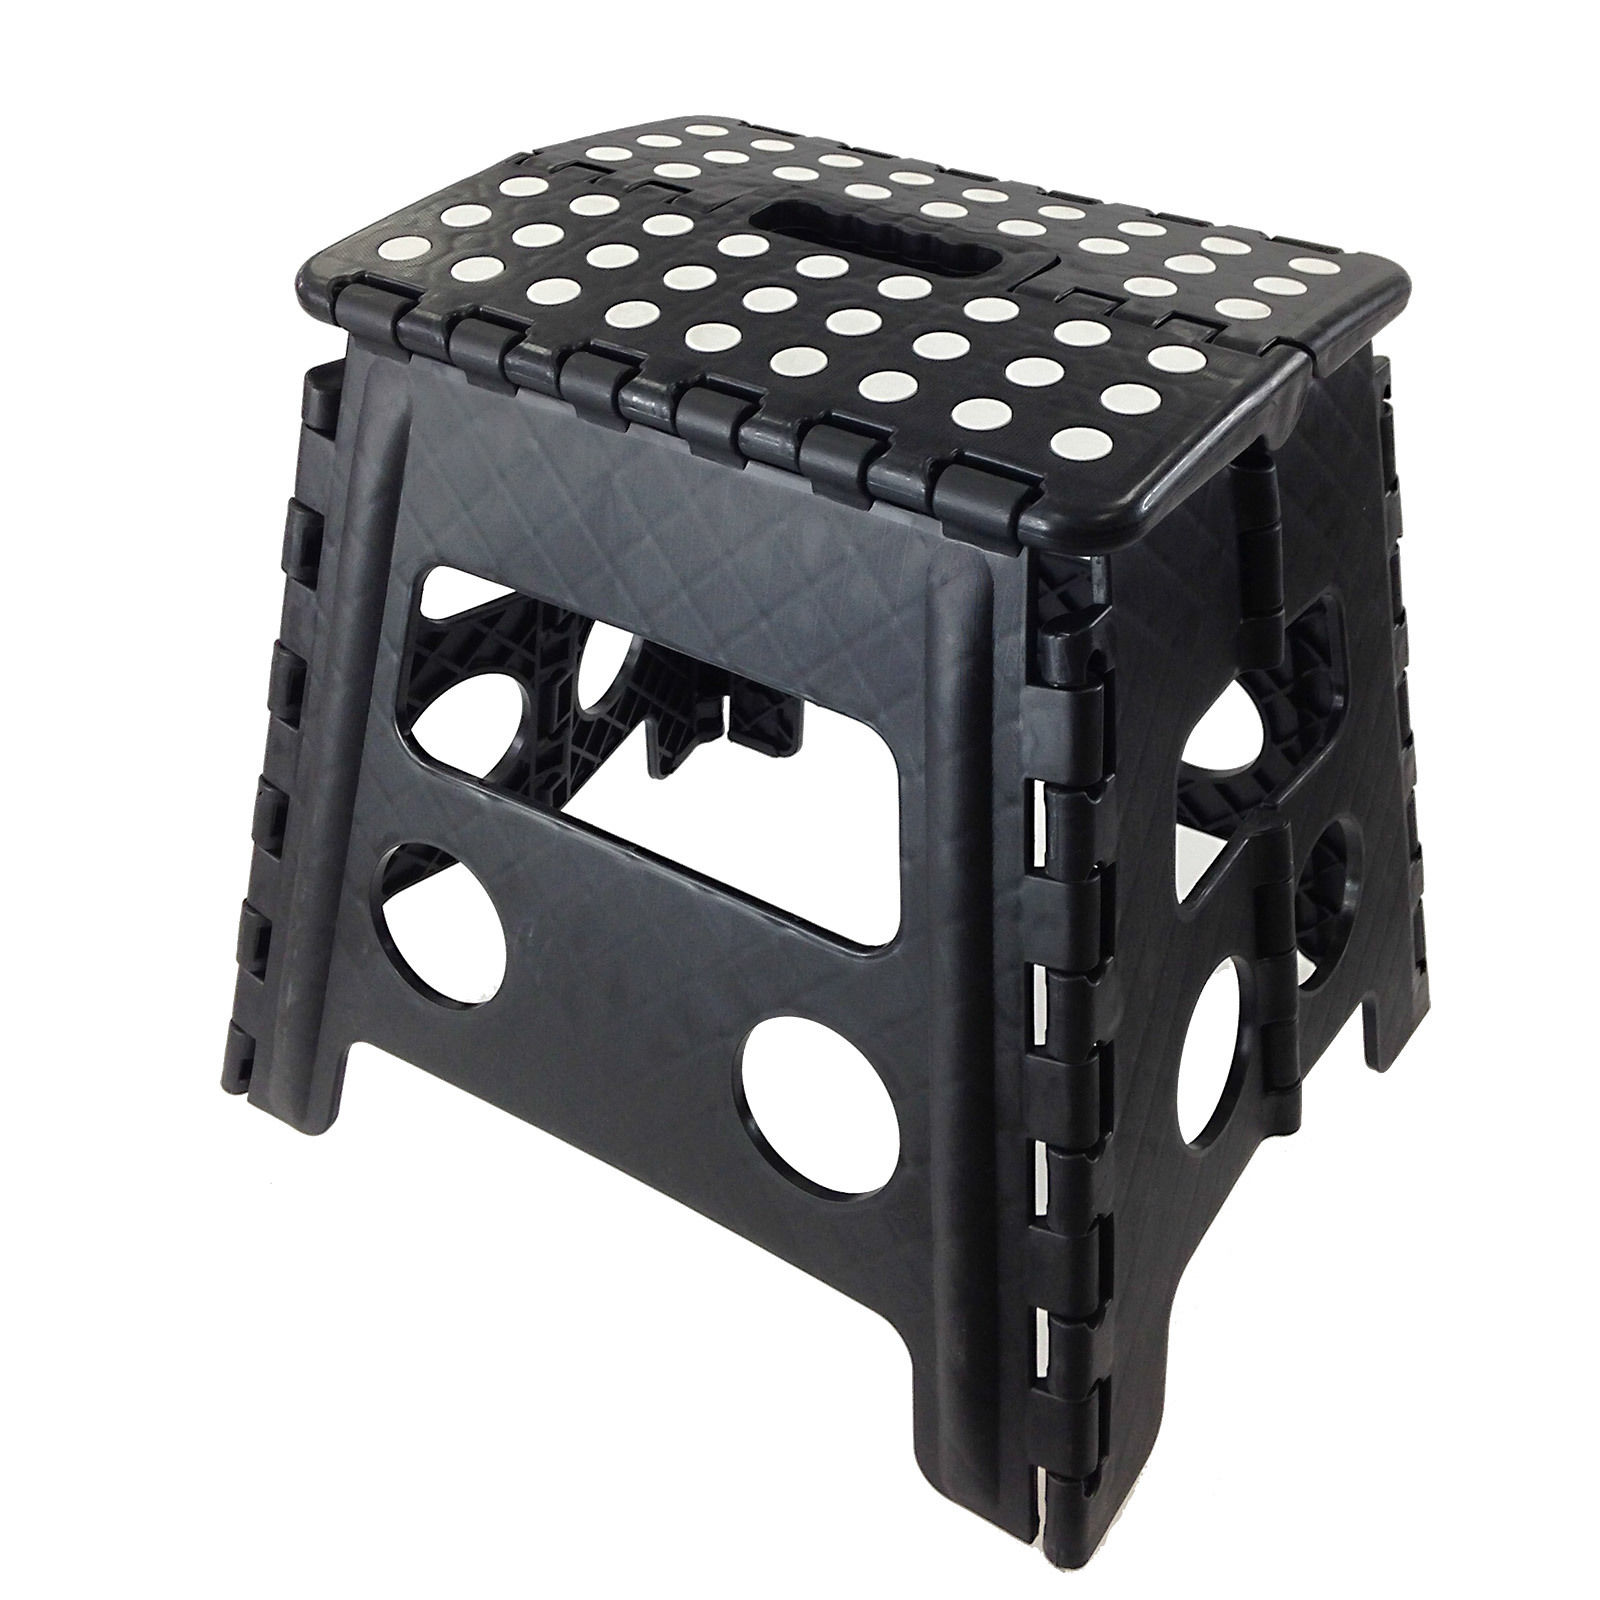 Easy Carry Folding Step Stool / Seat With Anti-Slip Surface Kids / Home - Black  sc 1 st  Easy Source Inc. & Folding Stool step chair climb closet high stand black cabinet ... islam-shia.org